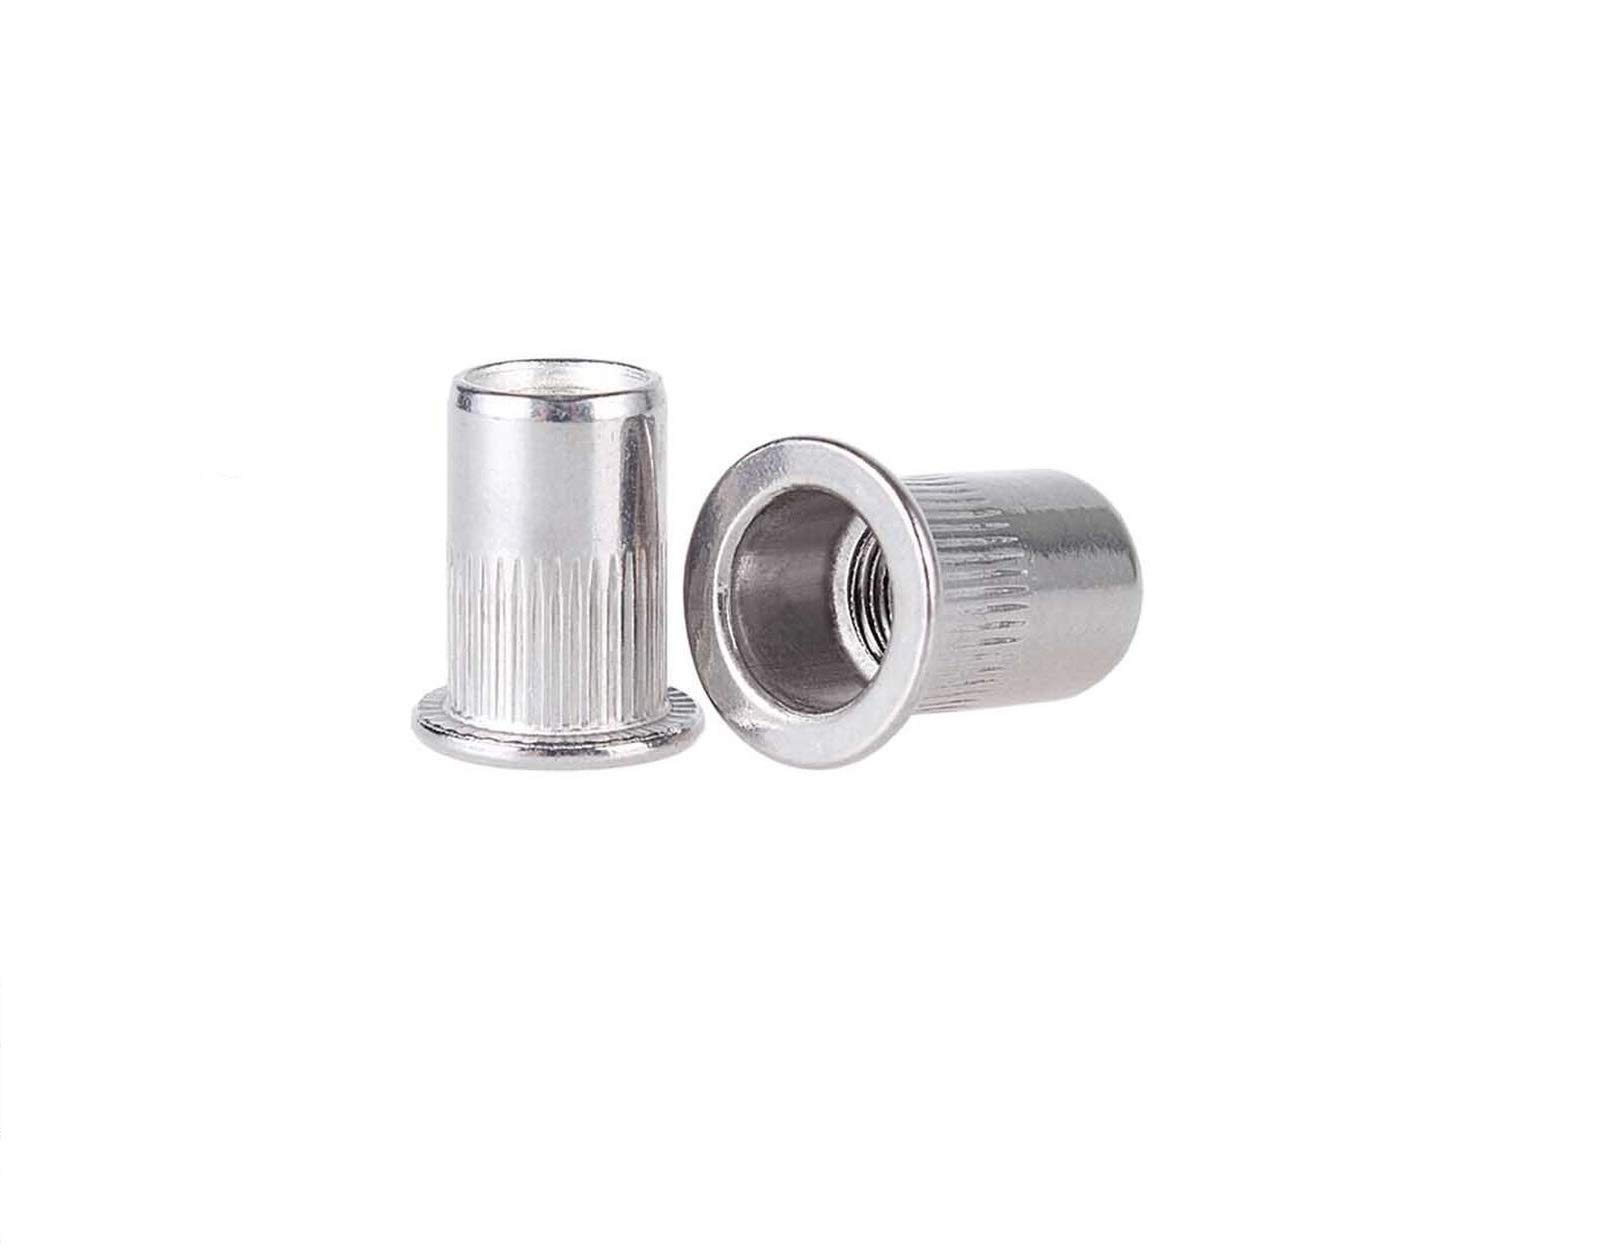 ees.Stainless Steel 304 Rivet Nut Rivnut Insert Nutsert - #8-32 UNC Nuts Qty. 50Pcs.